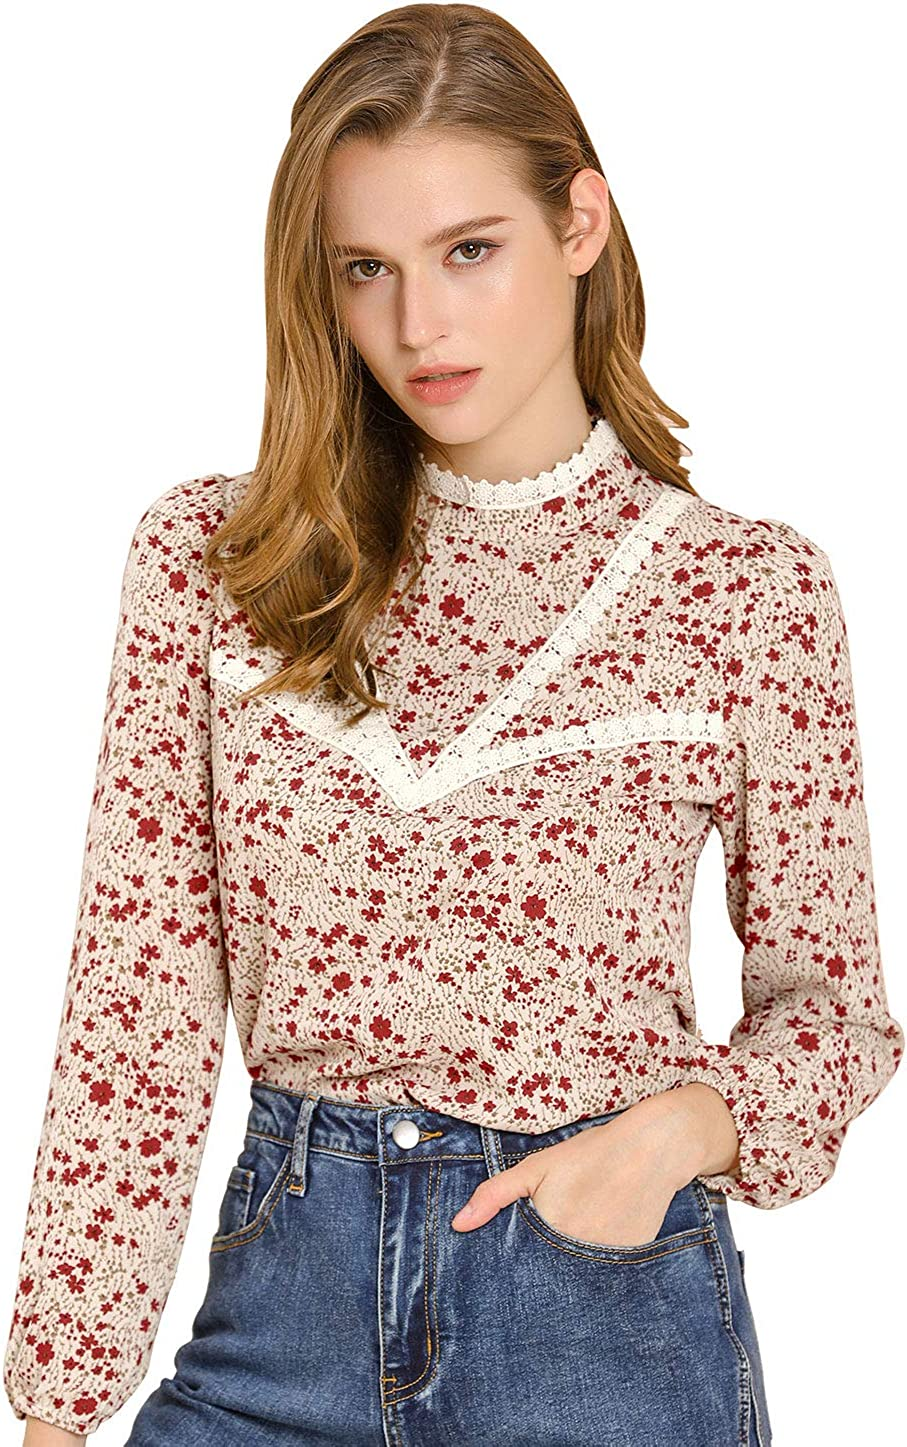 70s Outfits – 70s Style Ideas for Women Allegra K Womens Vintage Lace Trim Stand Collar Long Sleeve Floral Pattern Top $22.99 AT vintagedancer.com